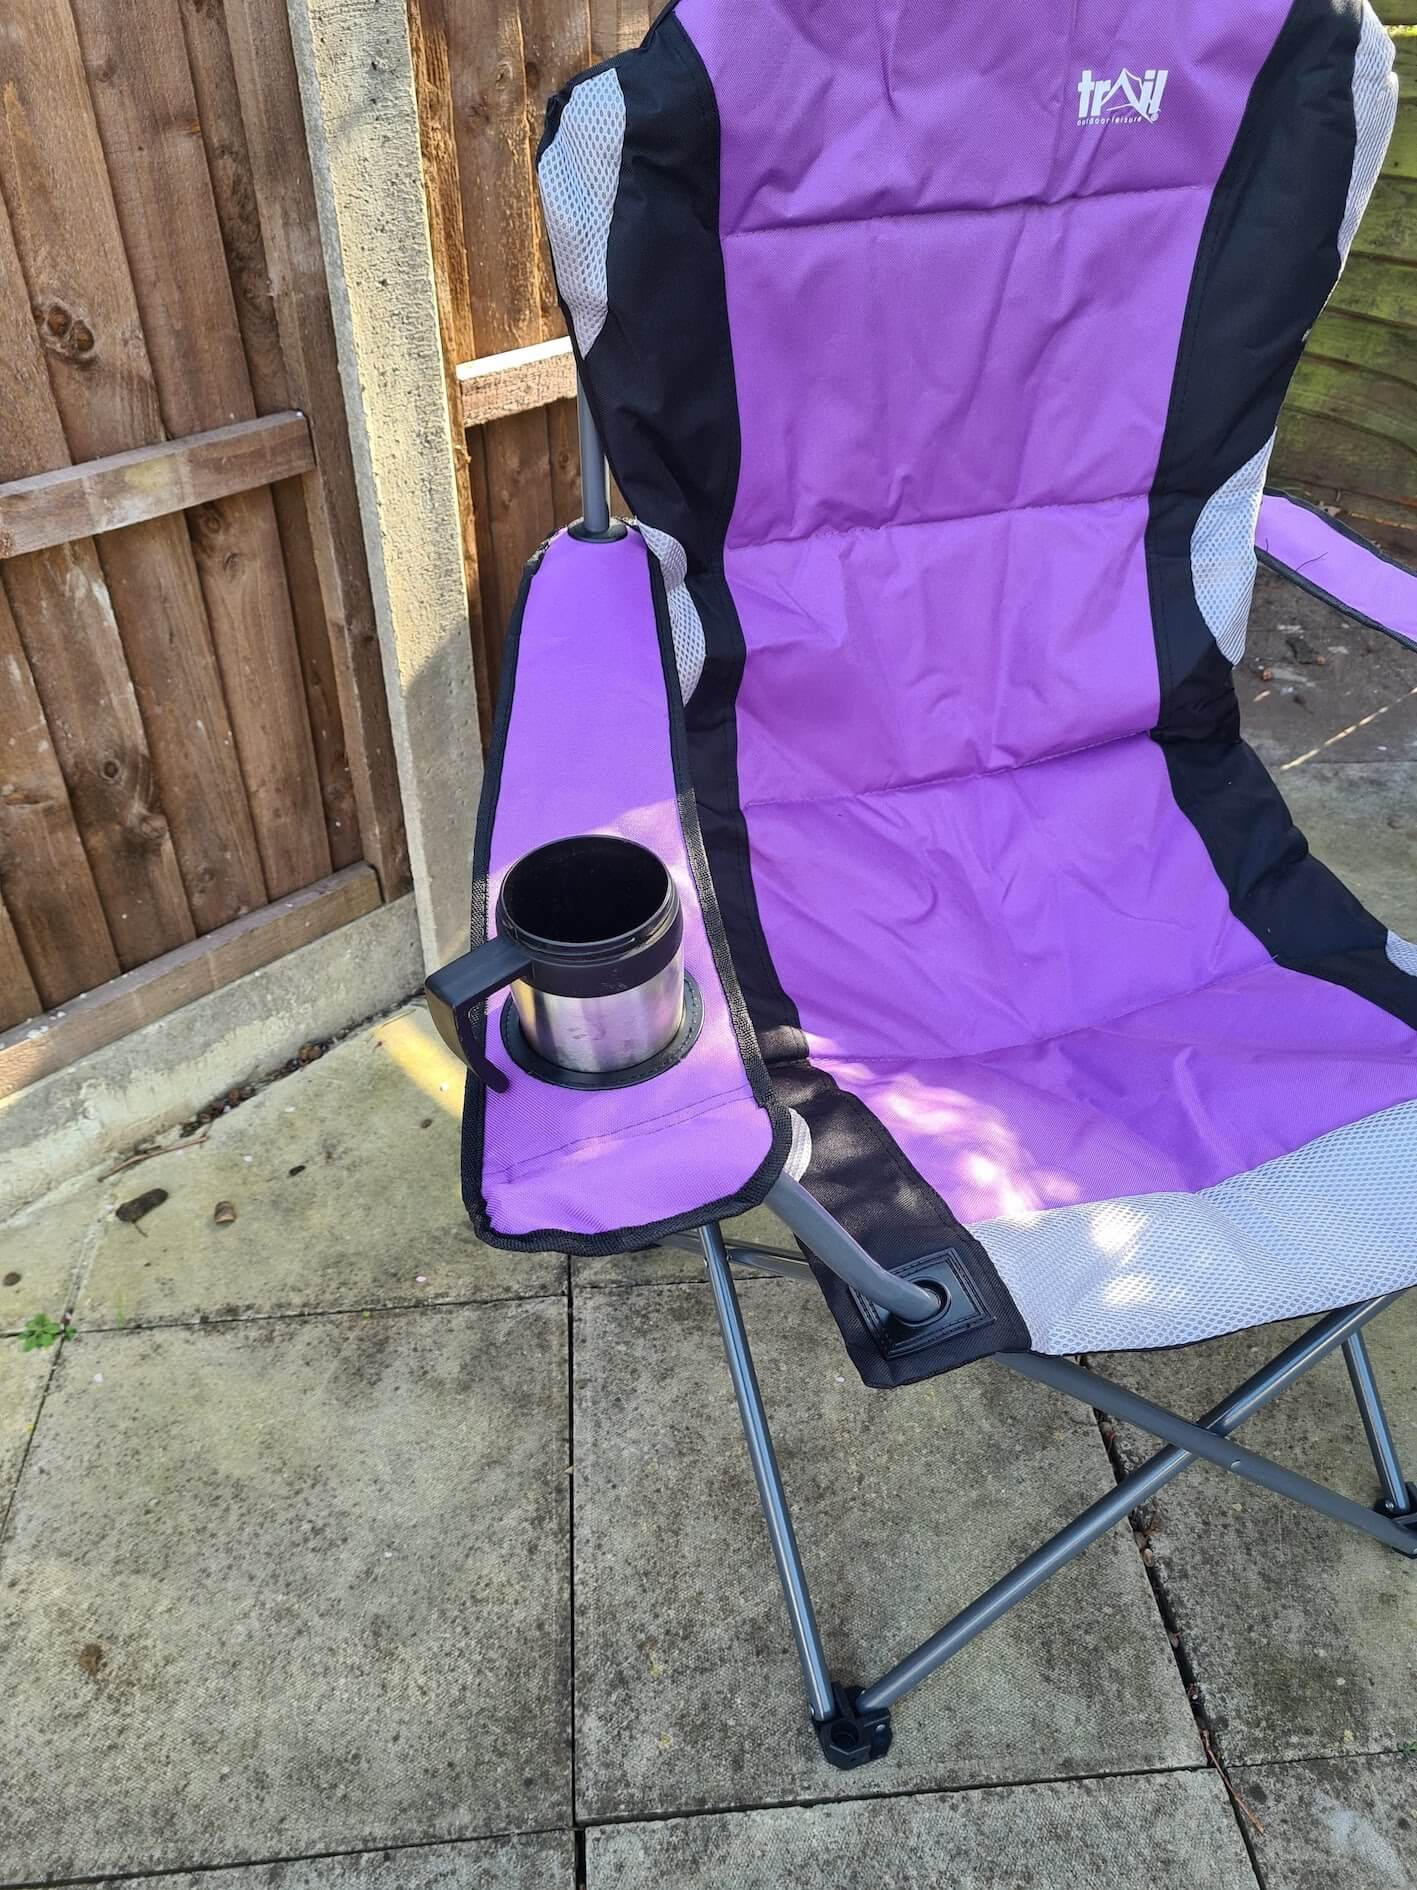 Trail Camping Chair - The Kestrel Deluxe High Back Review - cup holder